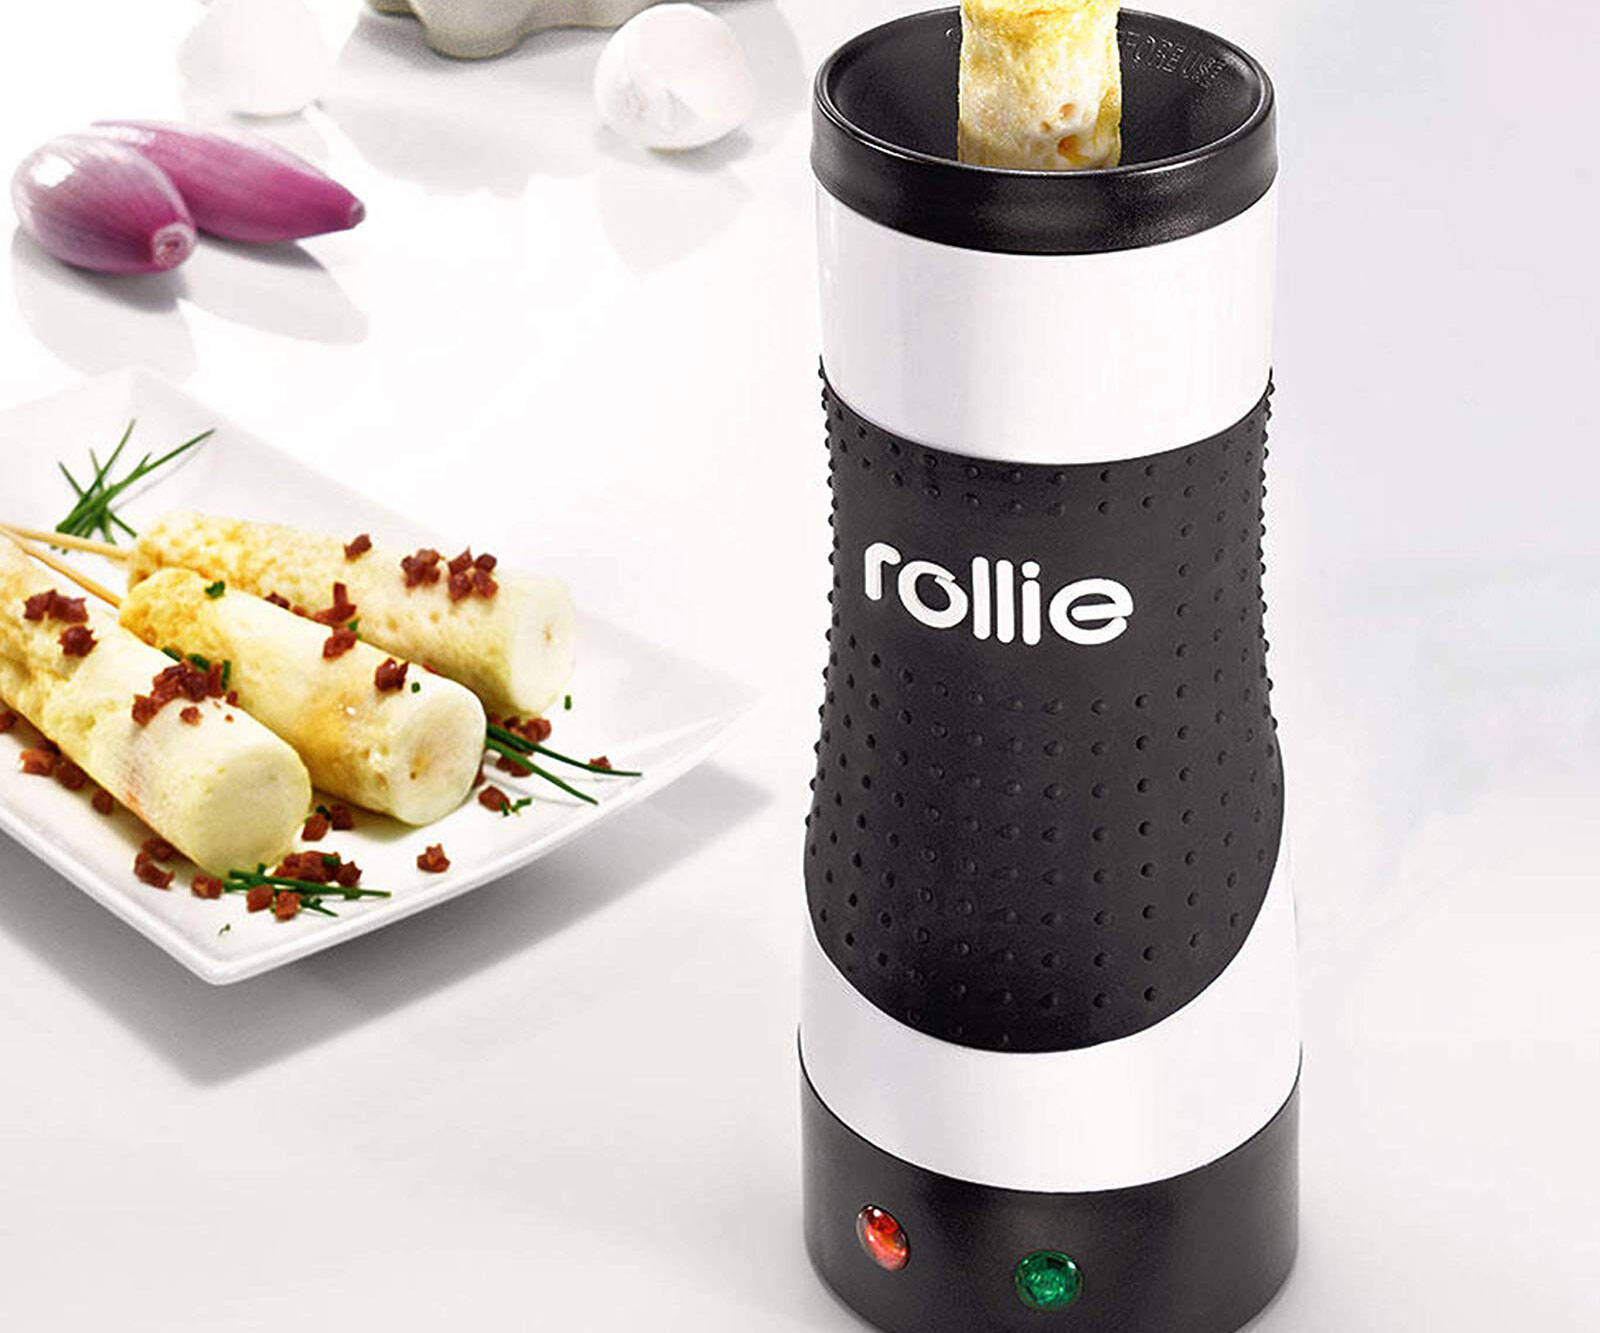 Rollie Automatic Egg Cooker - http://coolthings.us